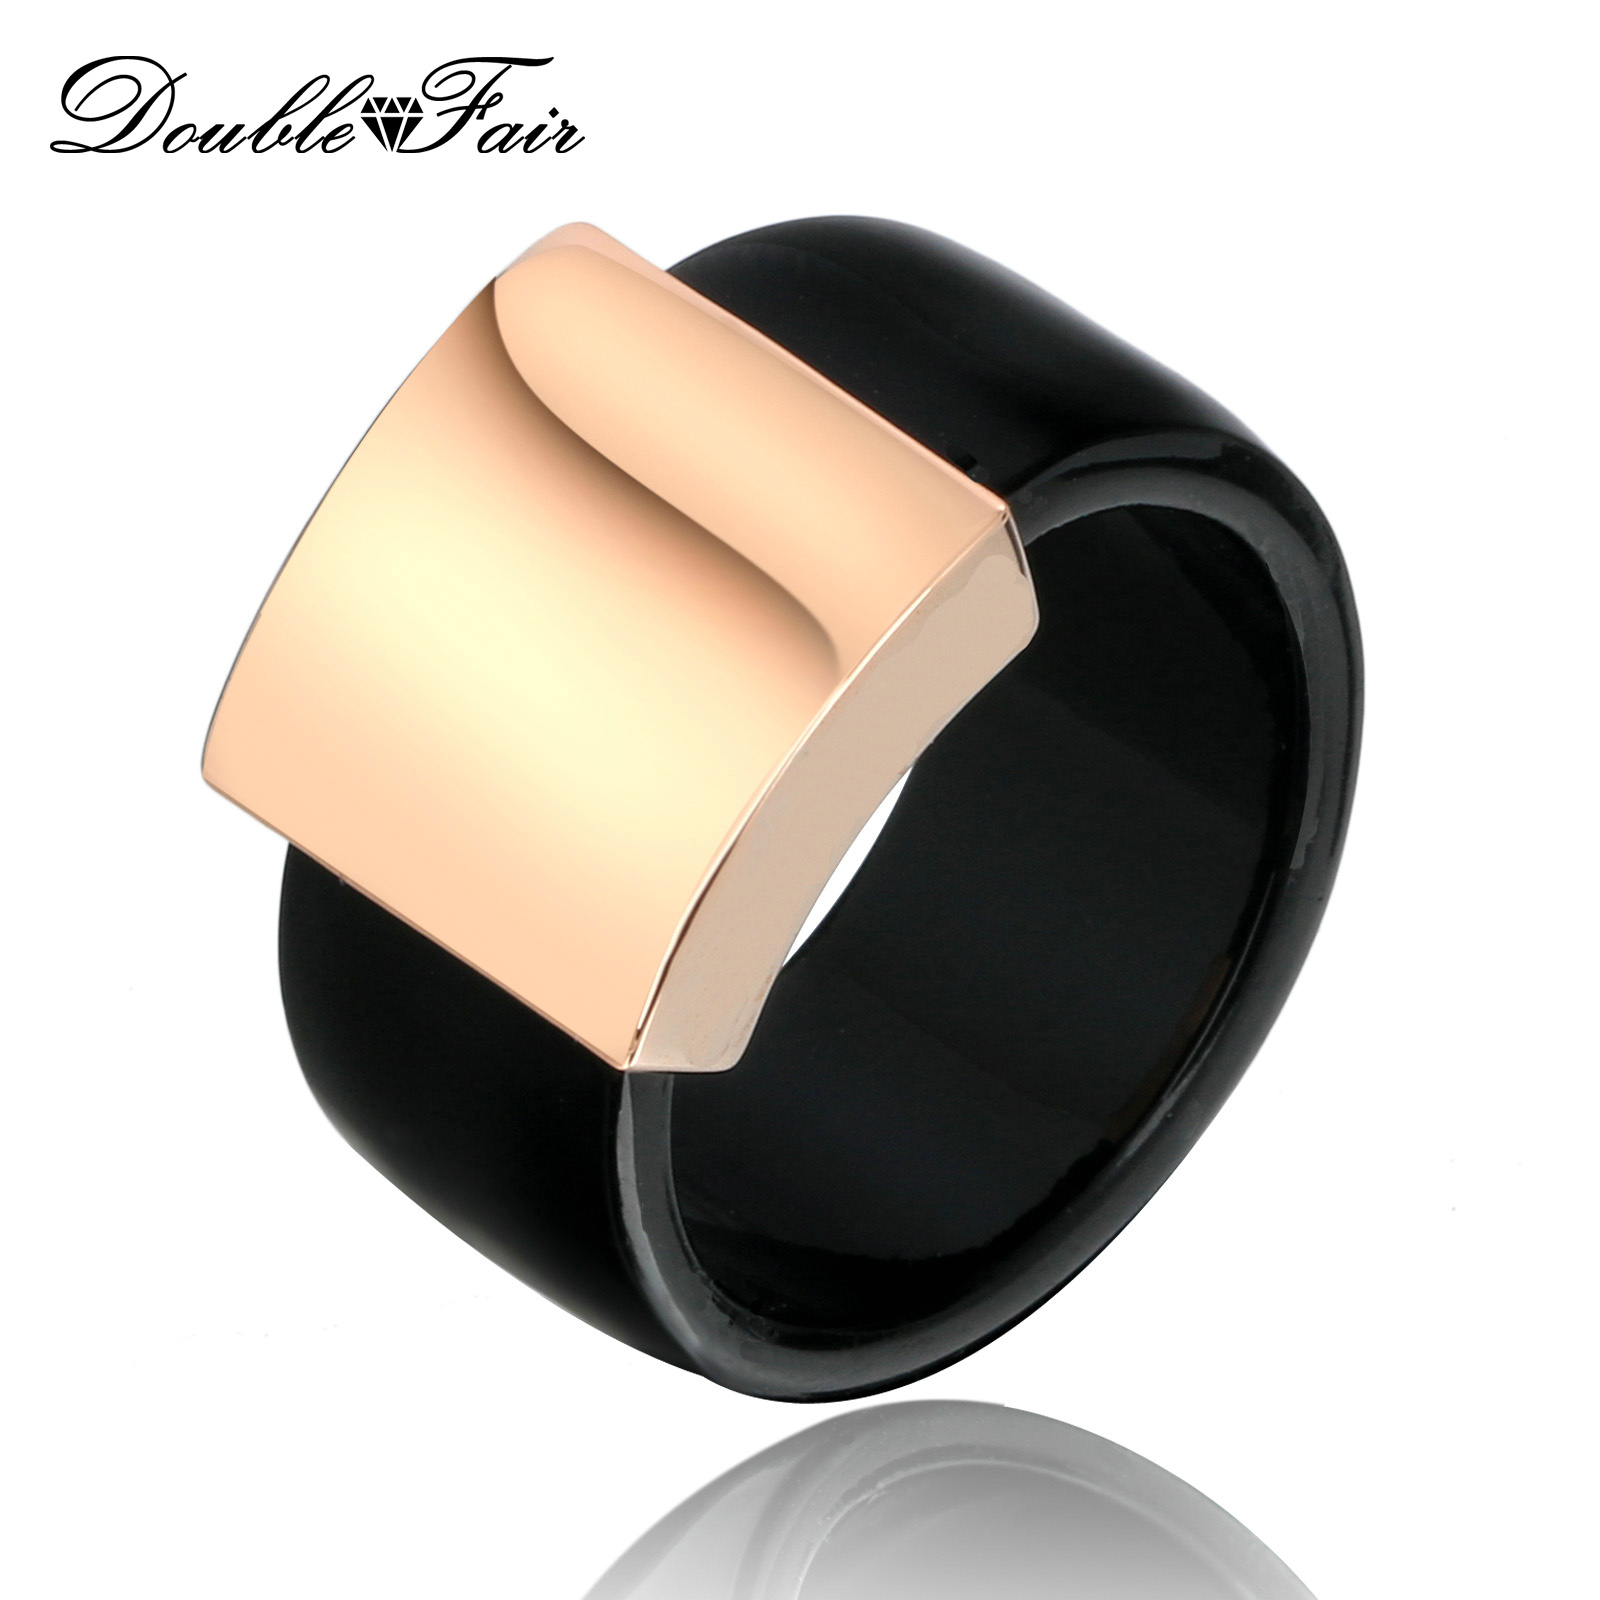 DFR344 Classic Square Glossy Metal Black Ring For Men and ...